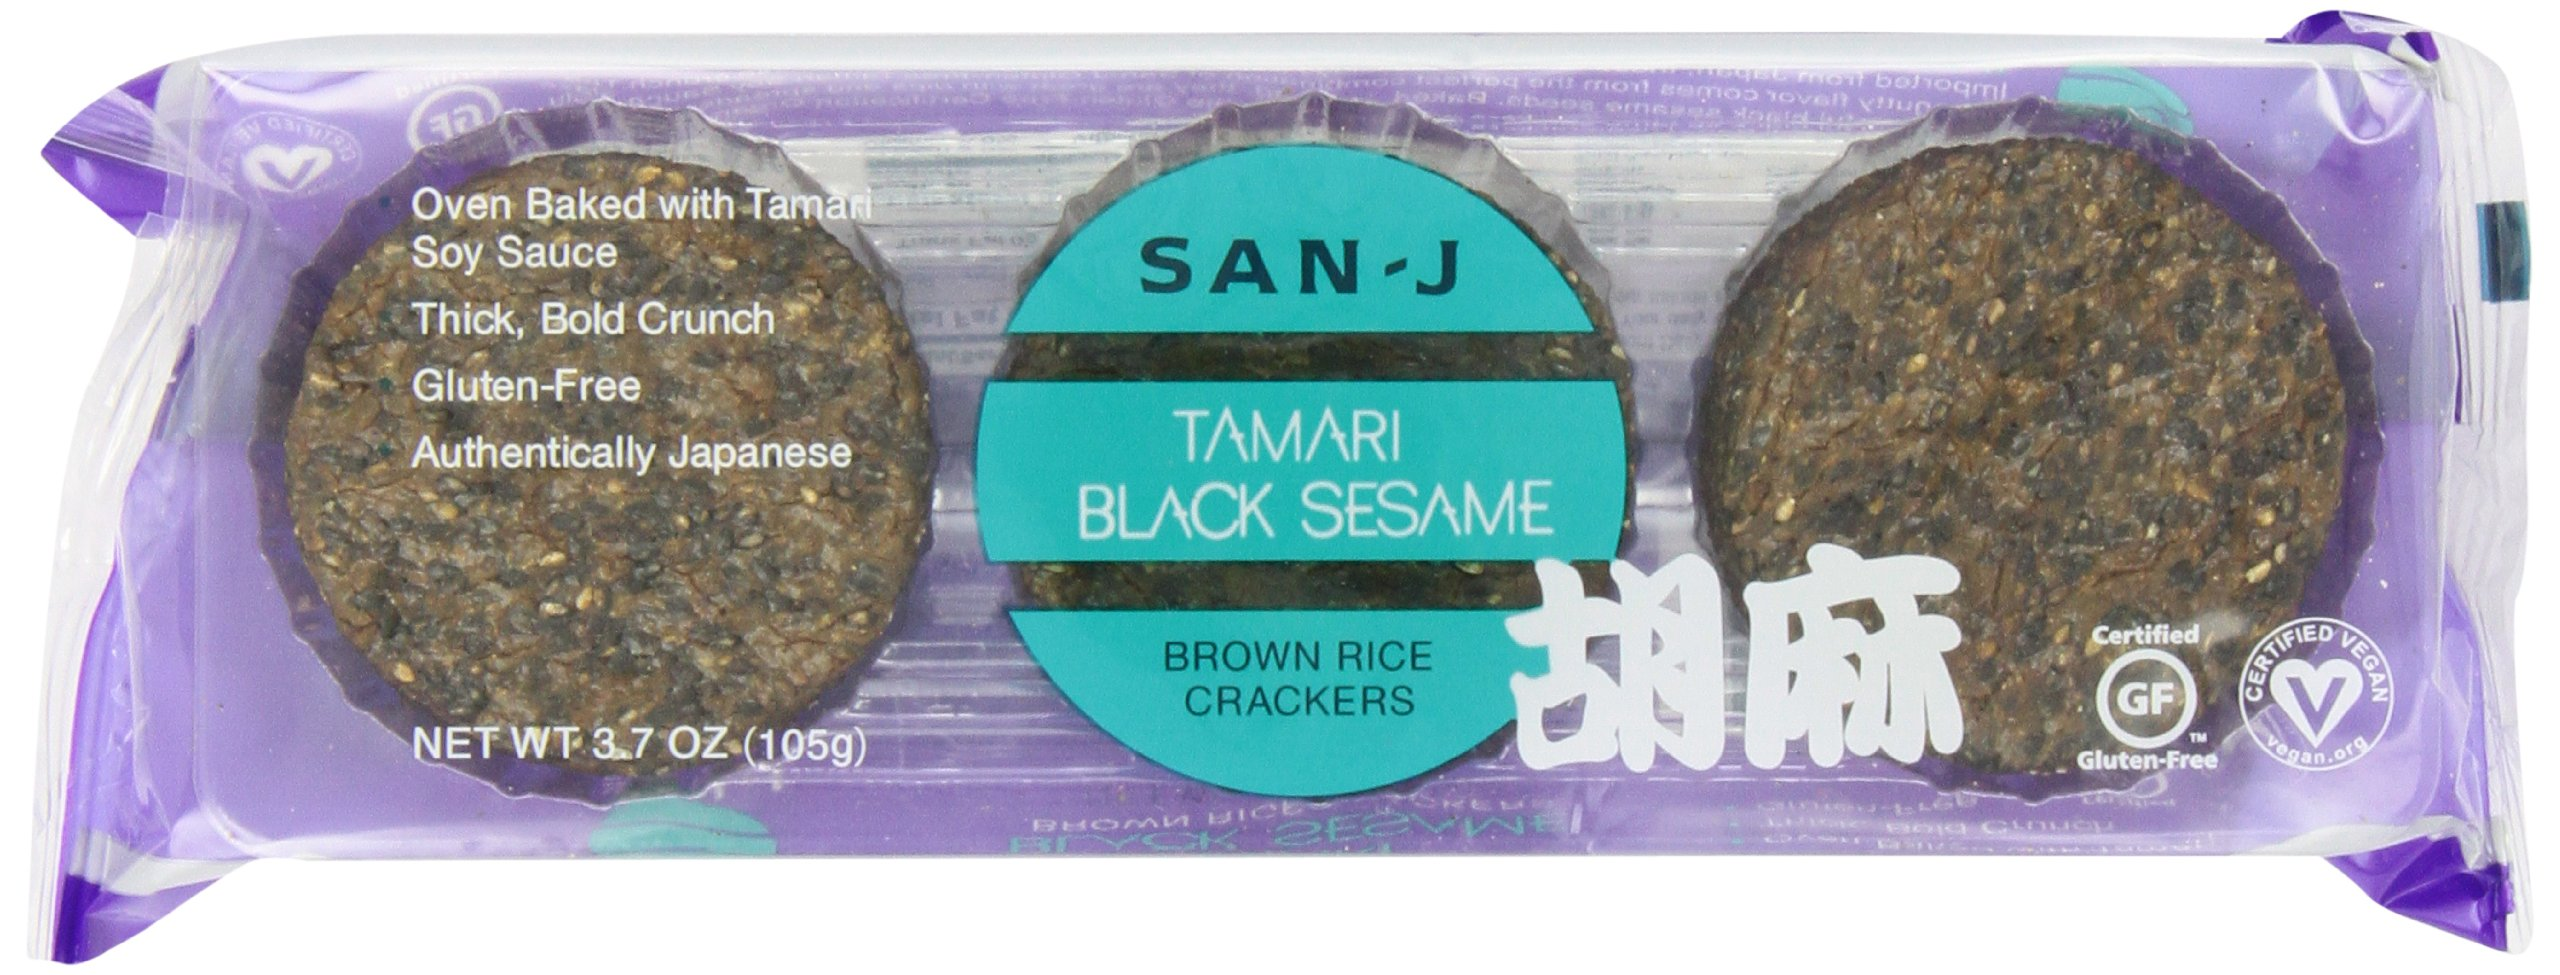 San-J Black Sesame Rice Crackers, 3.7-Ounce Packages (Pack of 12) by San-J